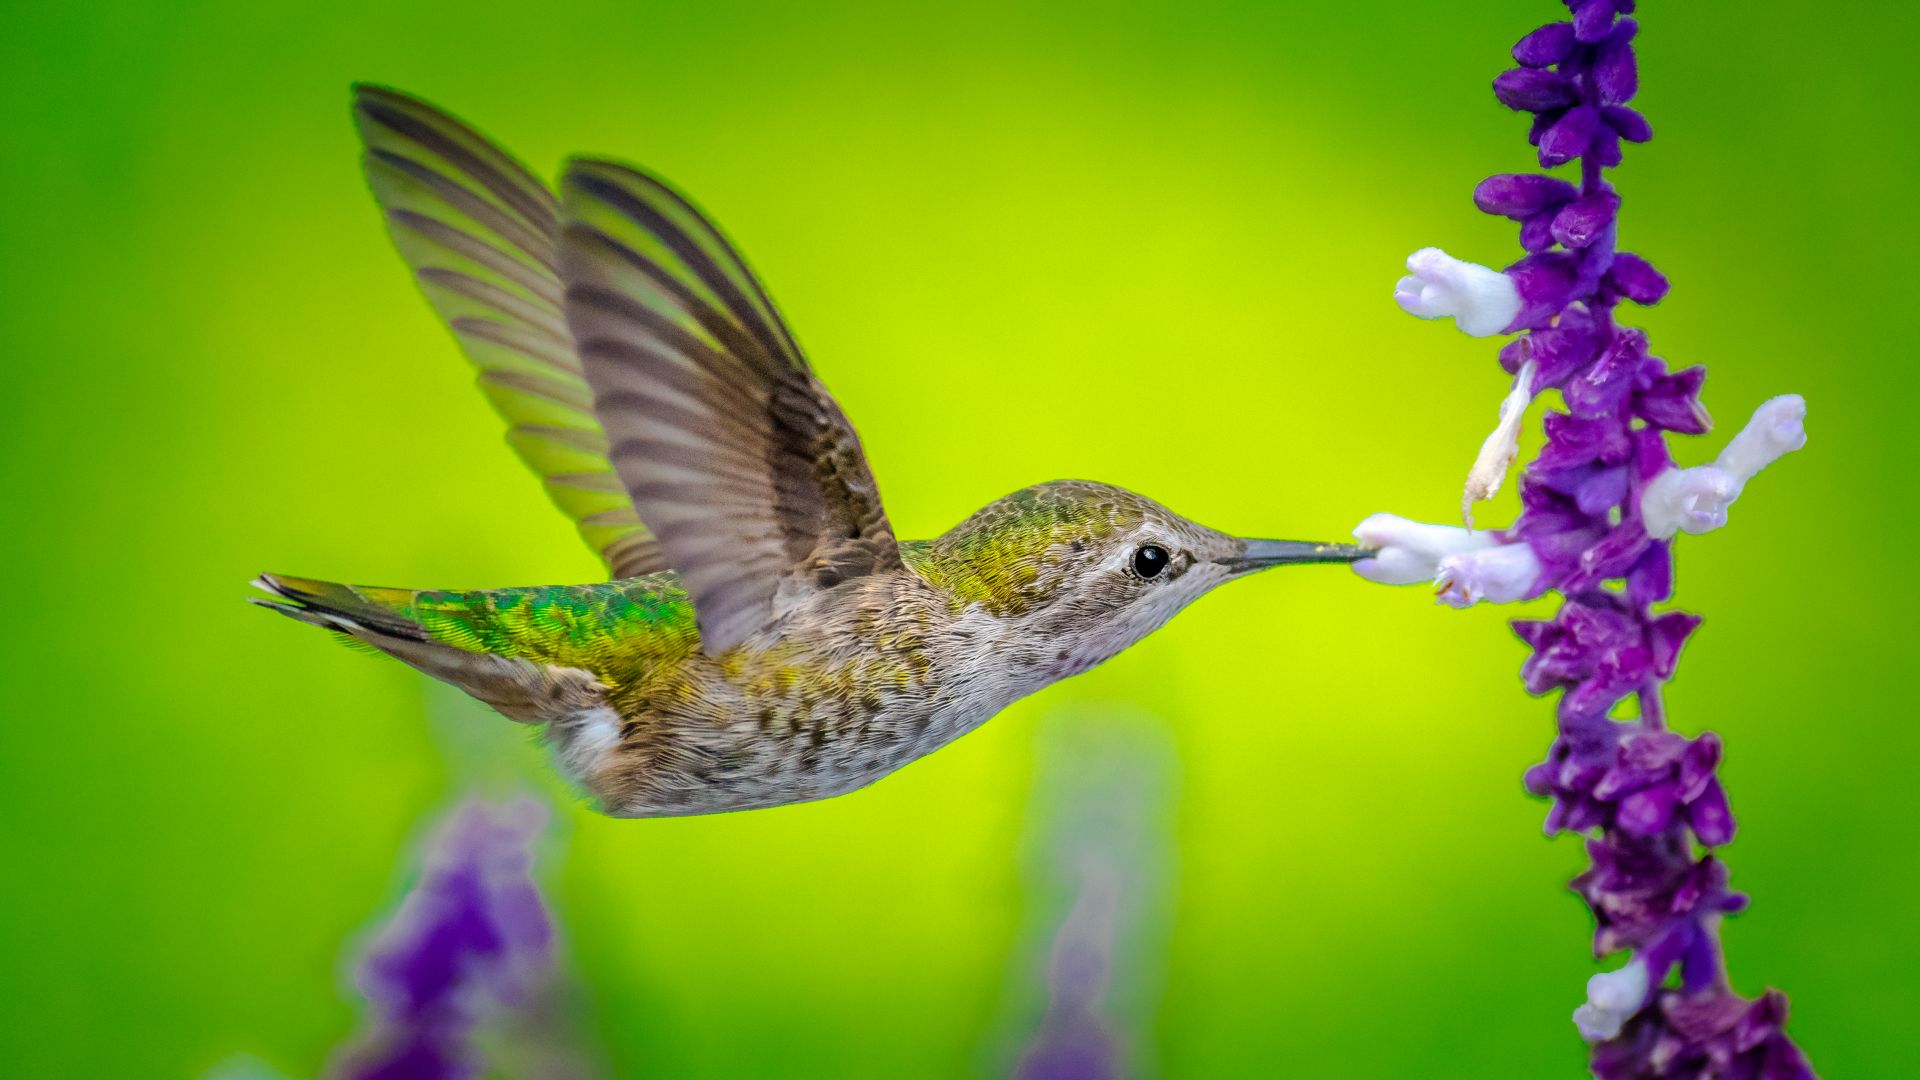 Hummingbird, bird, flower, 5k (horizontal)